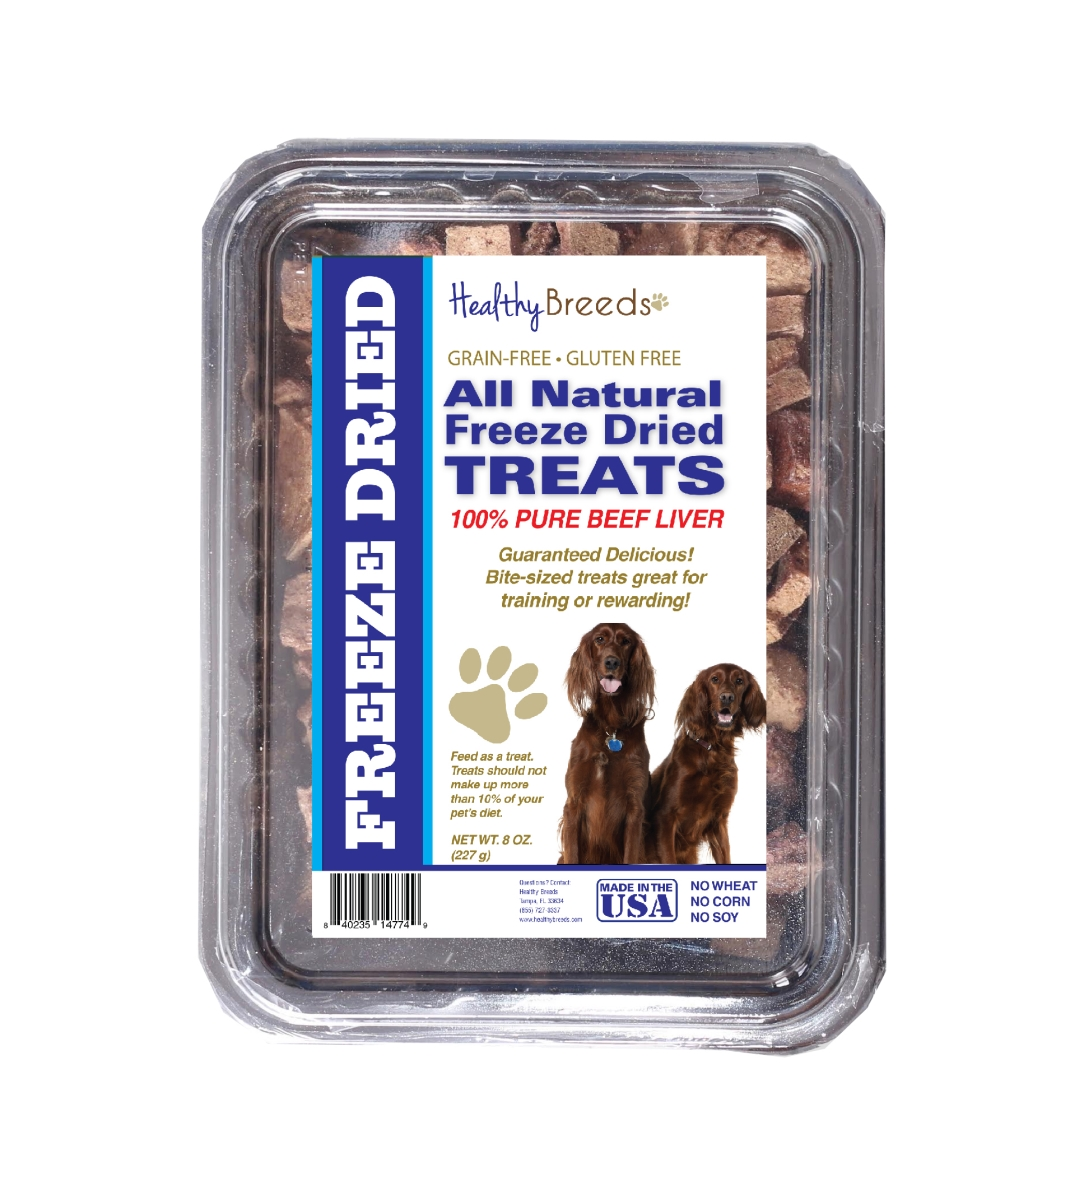 Healthy Breeds 840235147657 10 oz Irish Setter All Natural Freeze Dried Treats Beef Liver